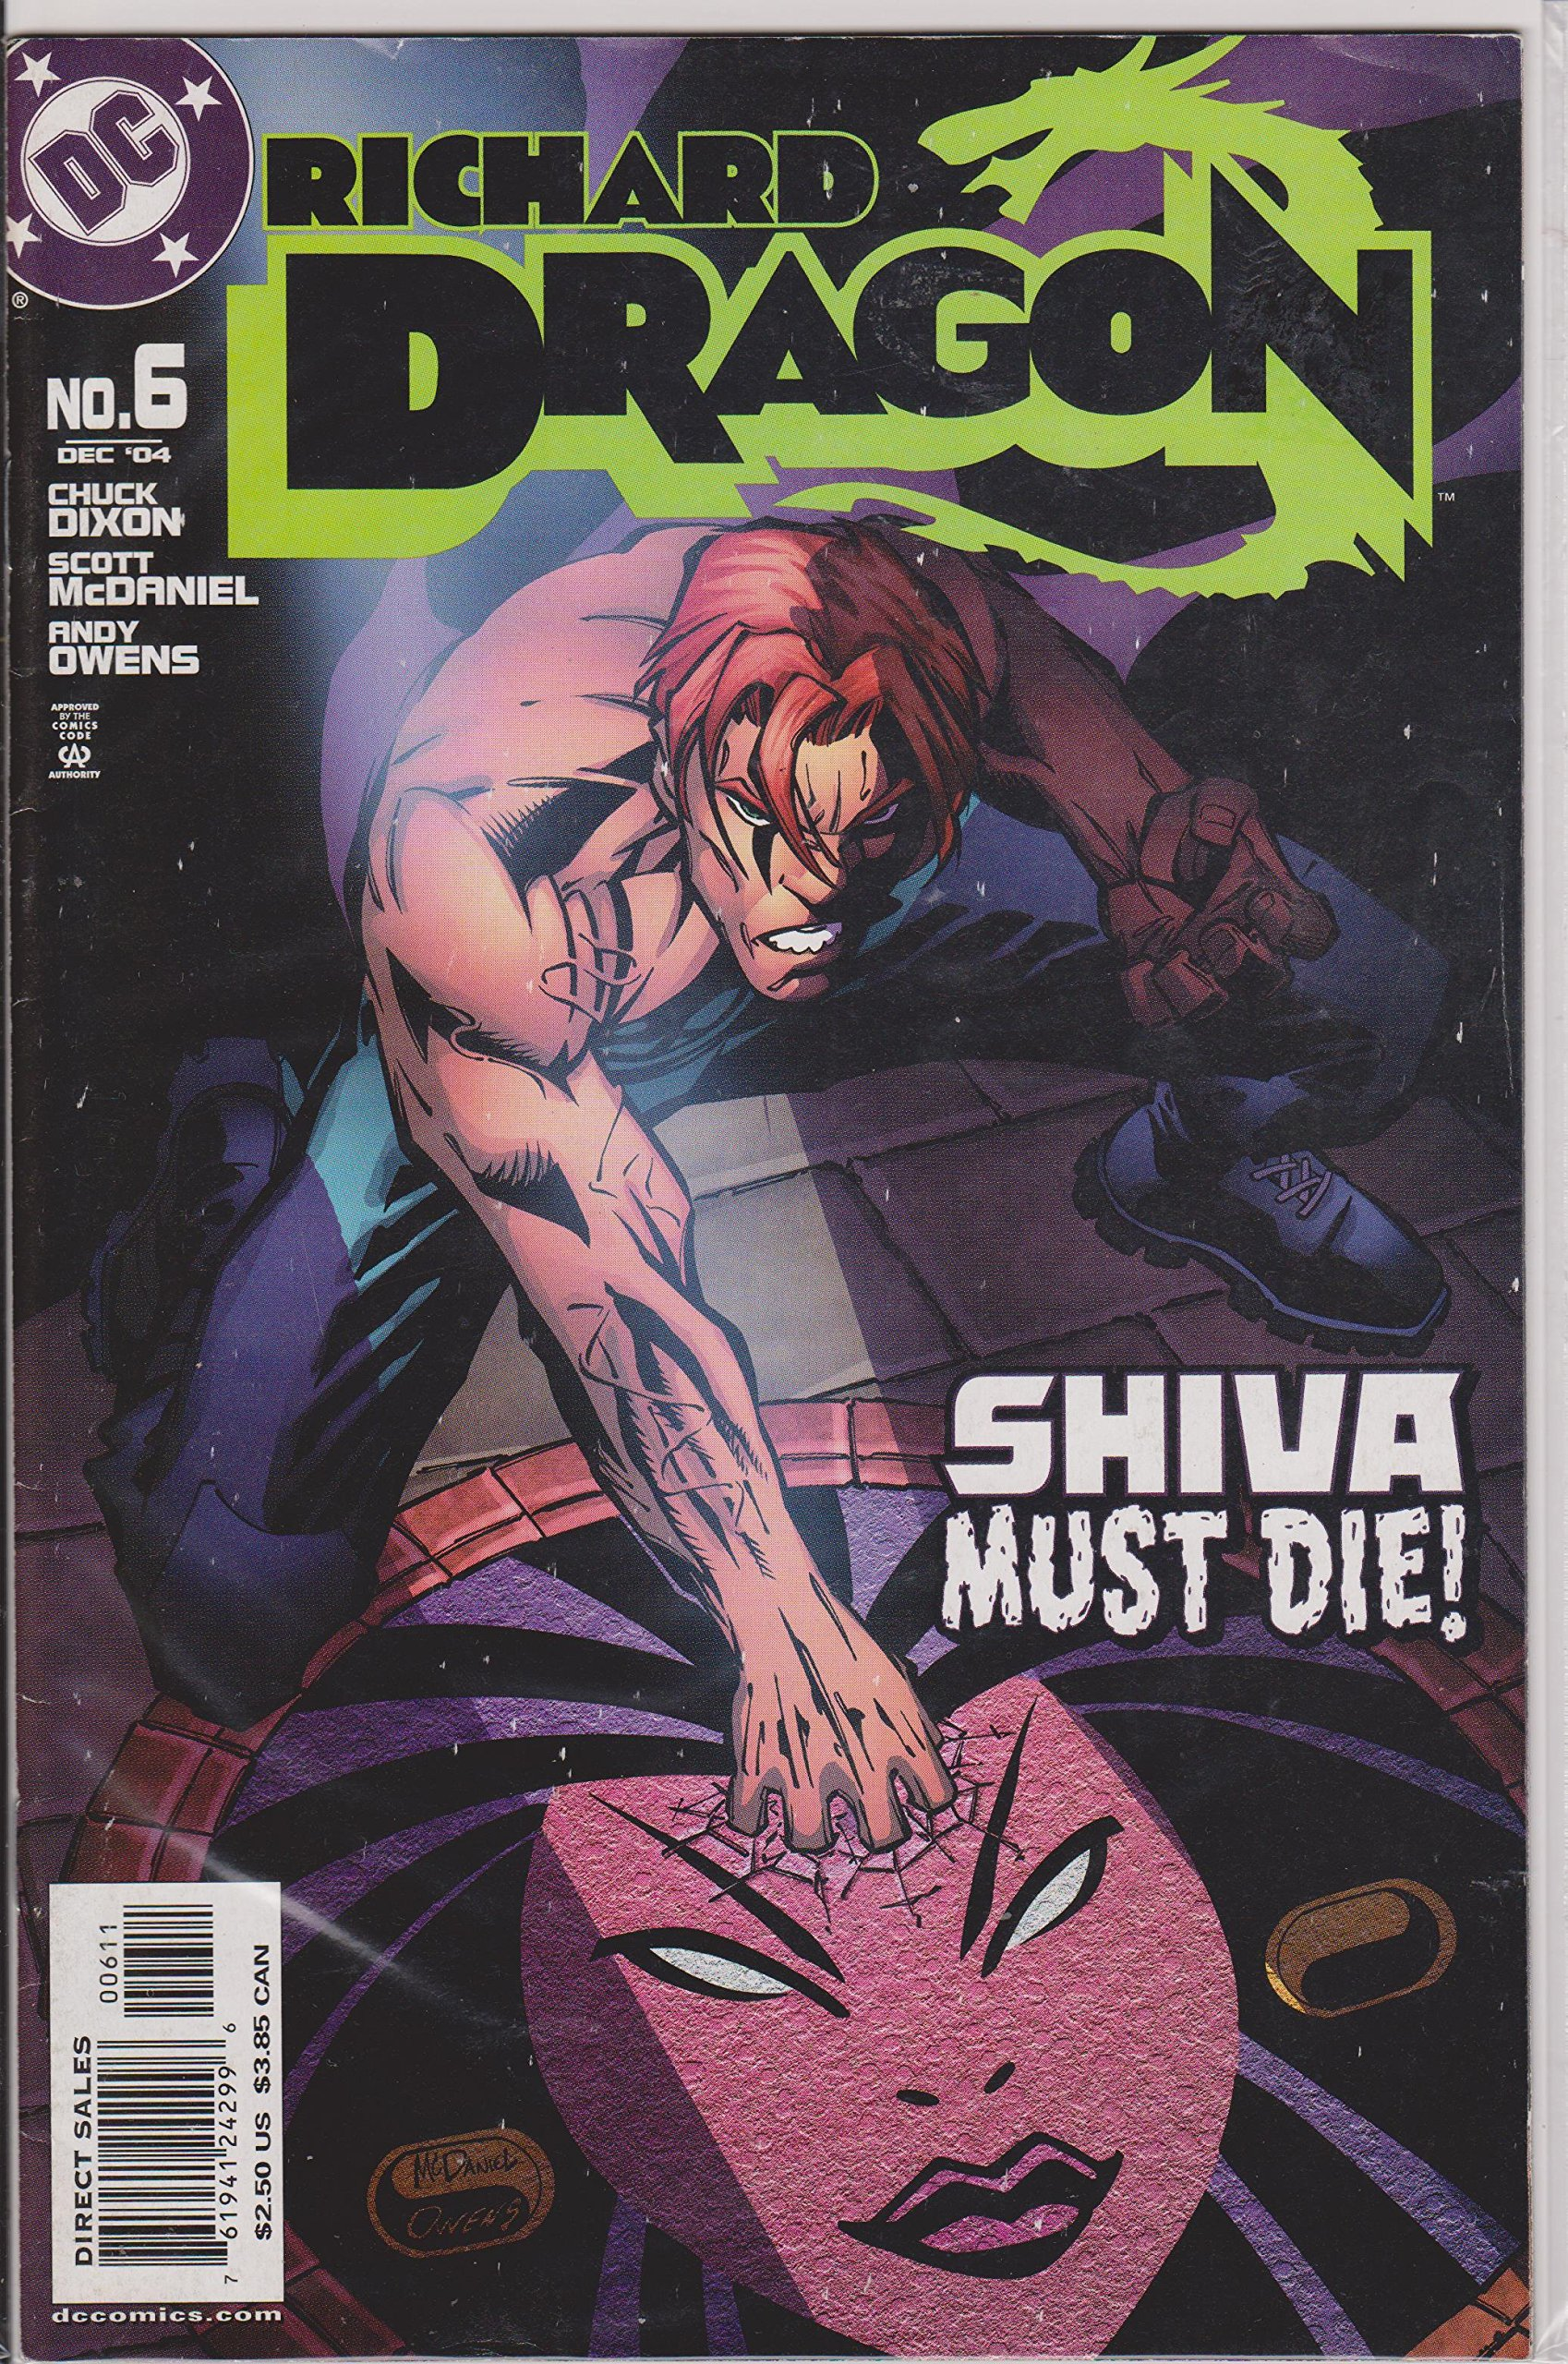 Read Online Richard Dragon #6: Shiva Must Die! ebook